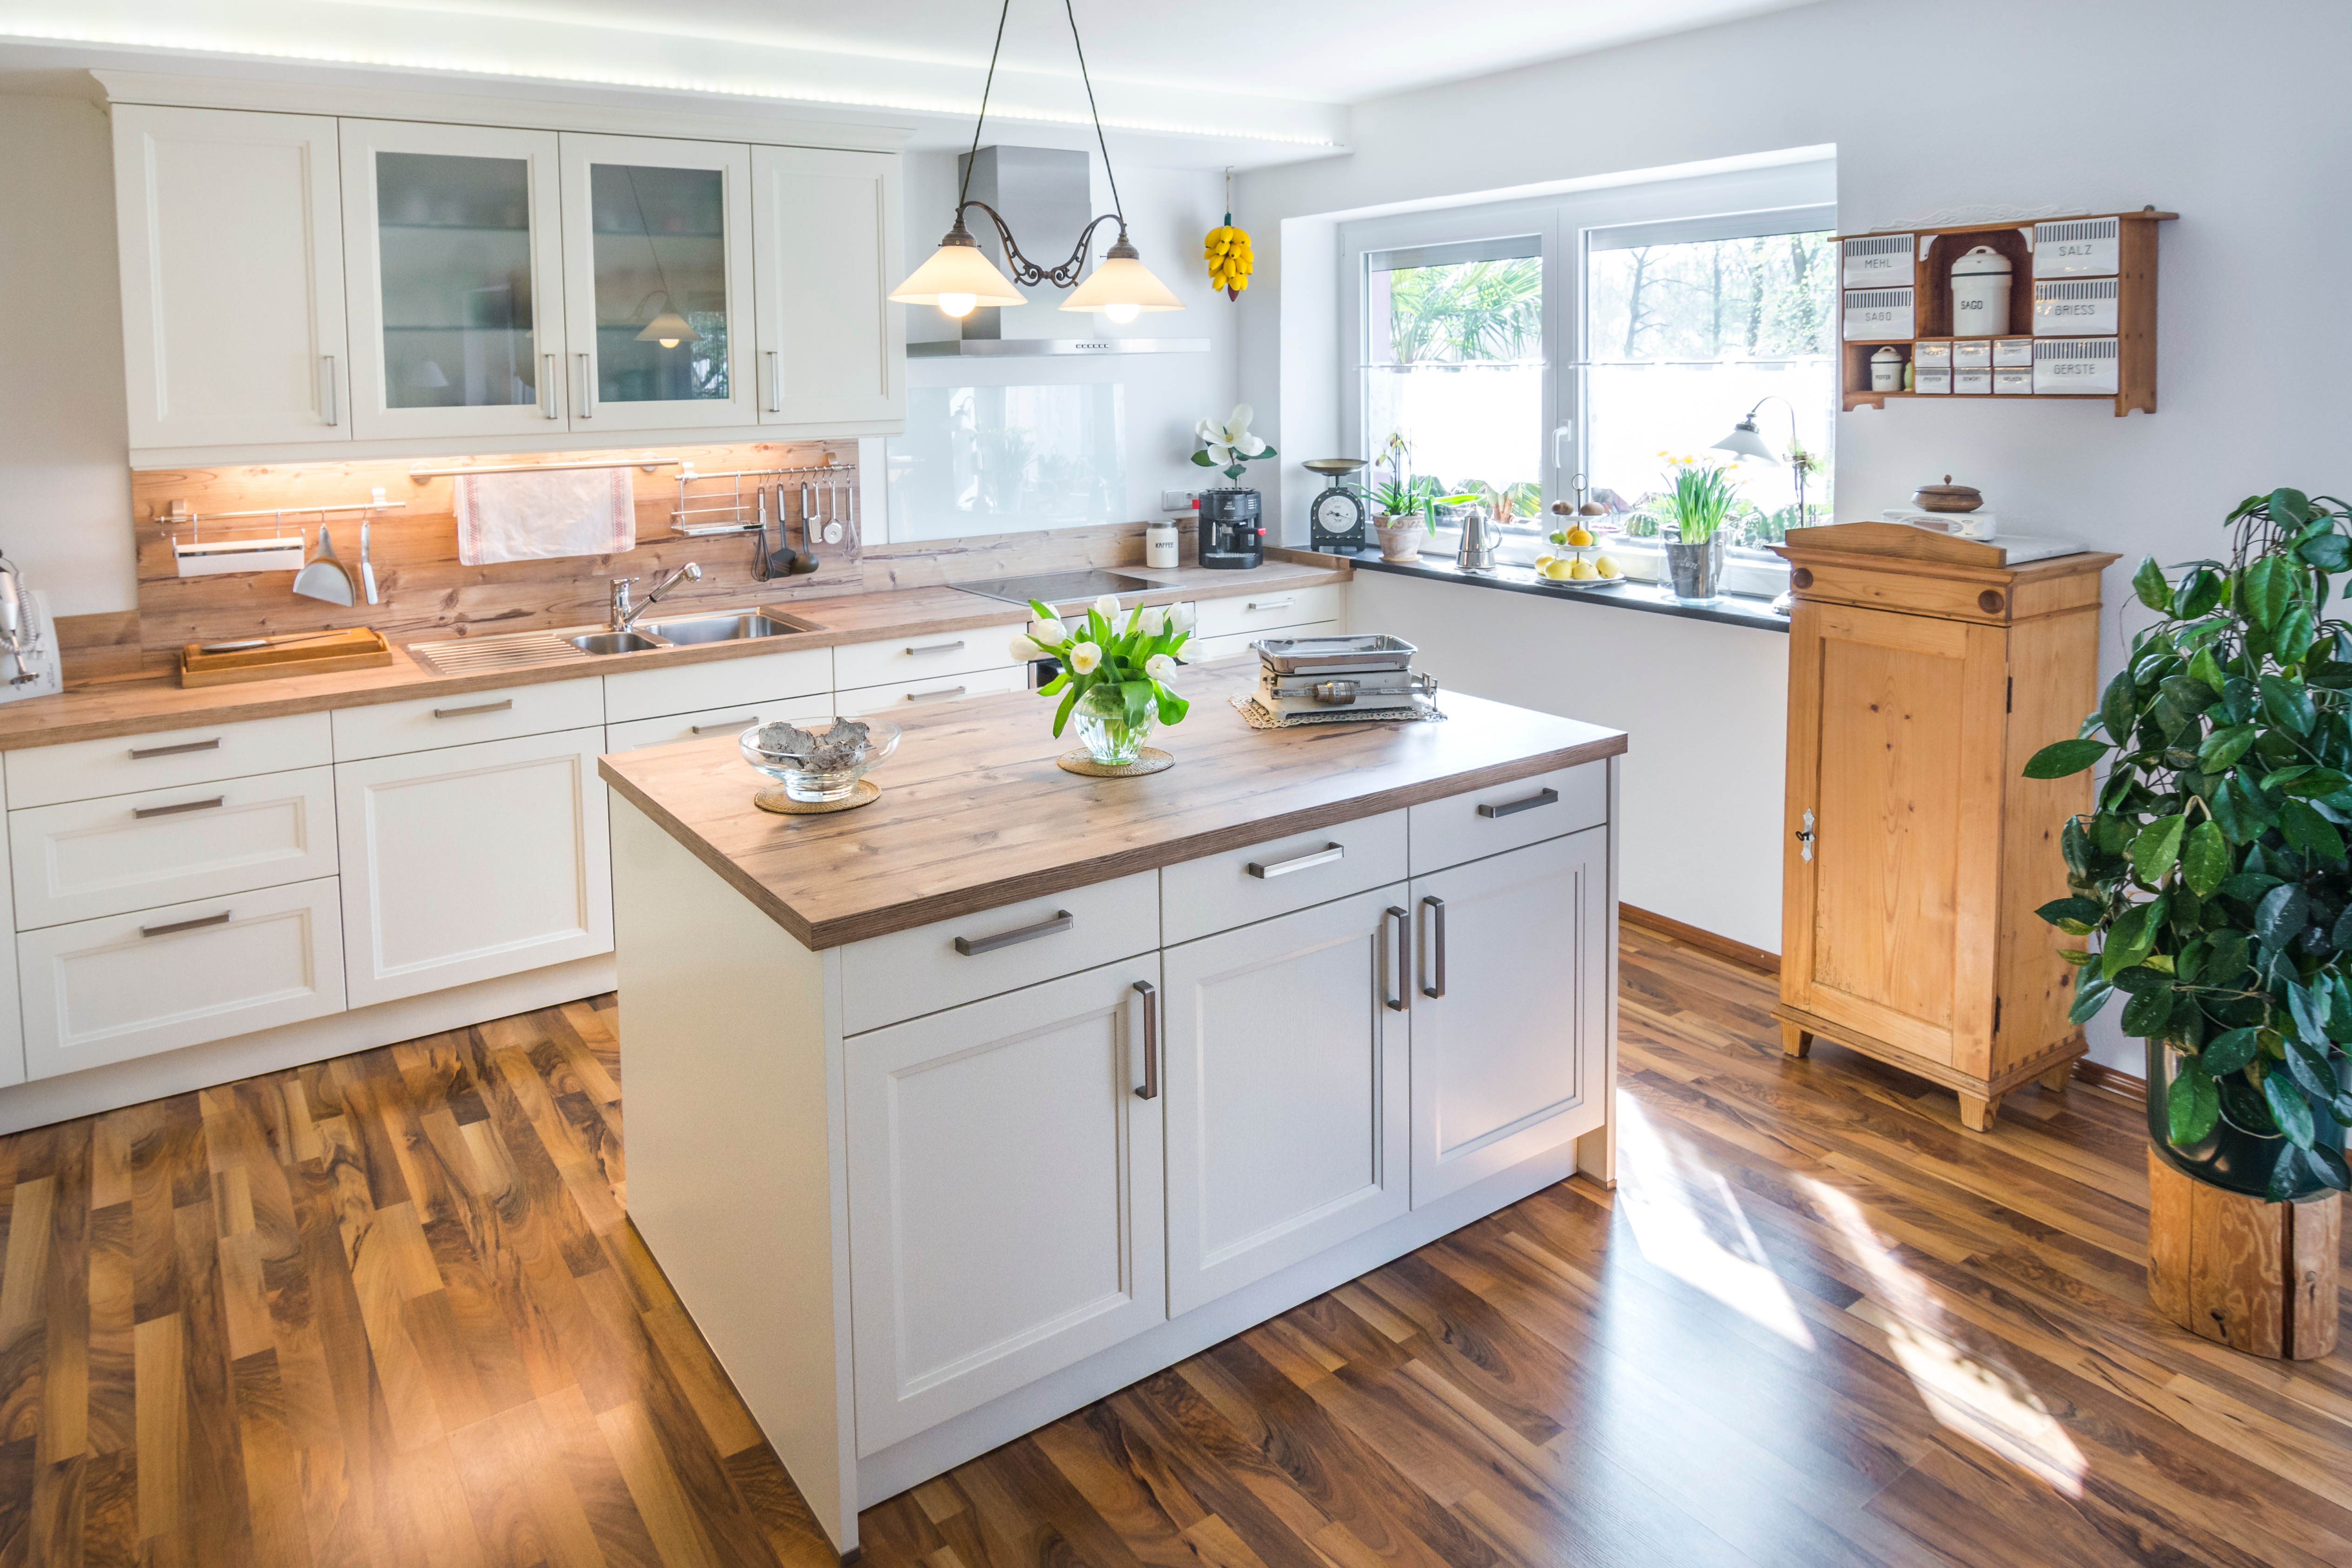 - 3 Ways To Complement A Butcher Block Countertop In Your Kitchen